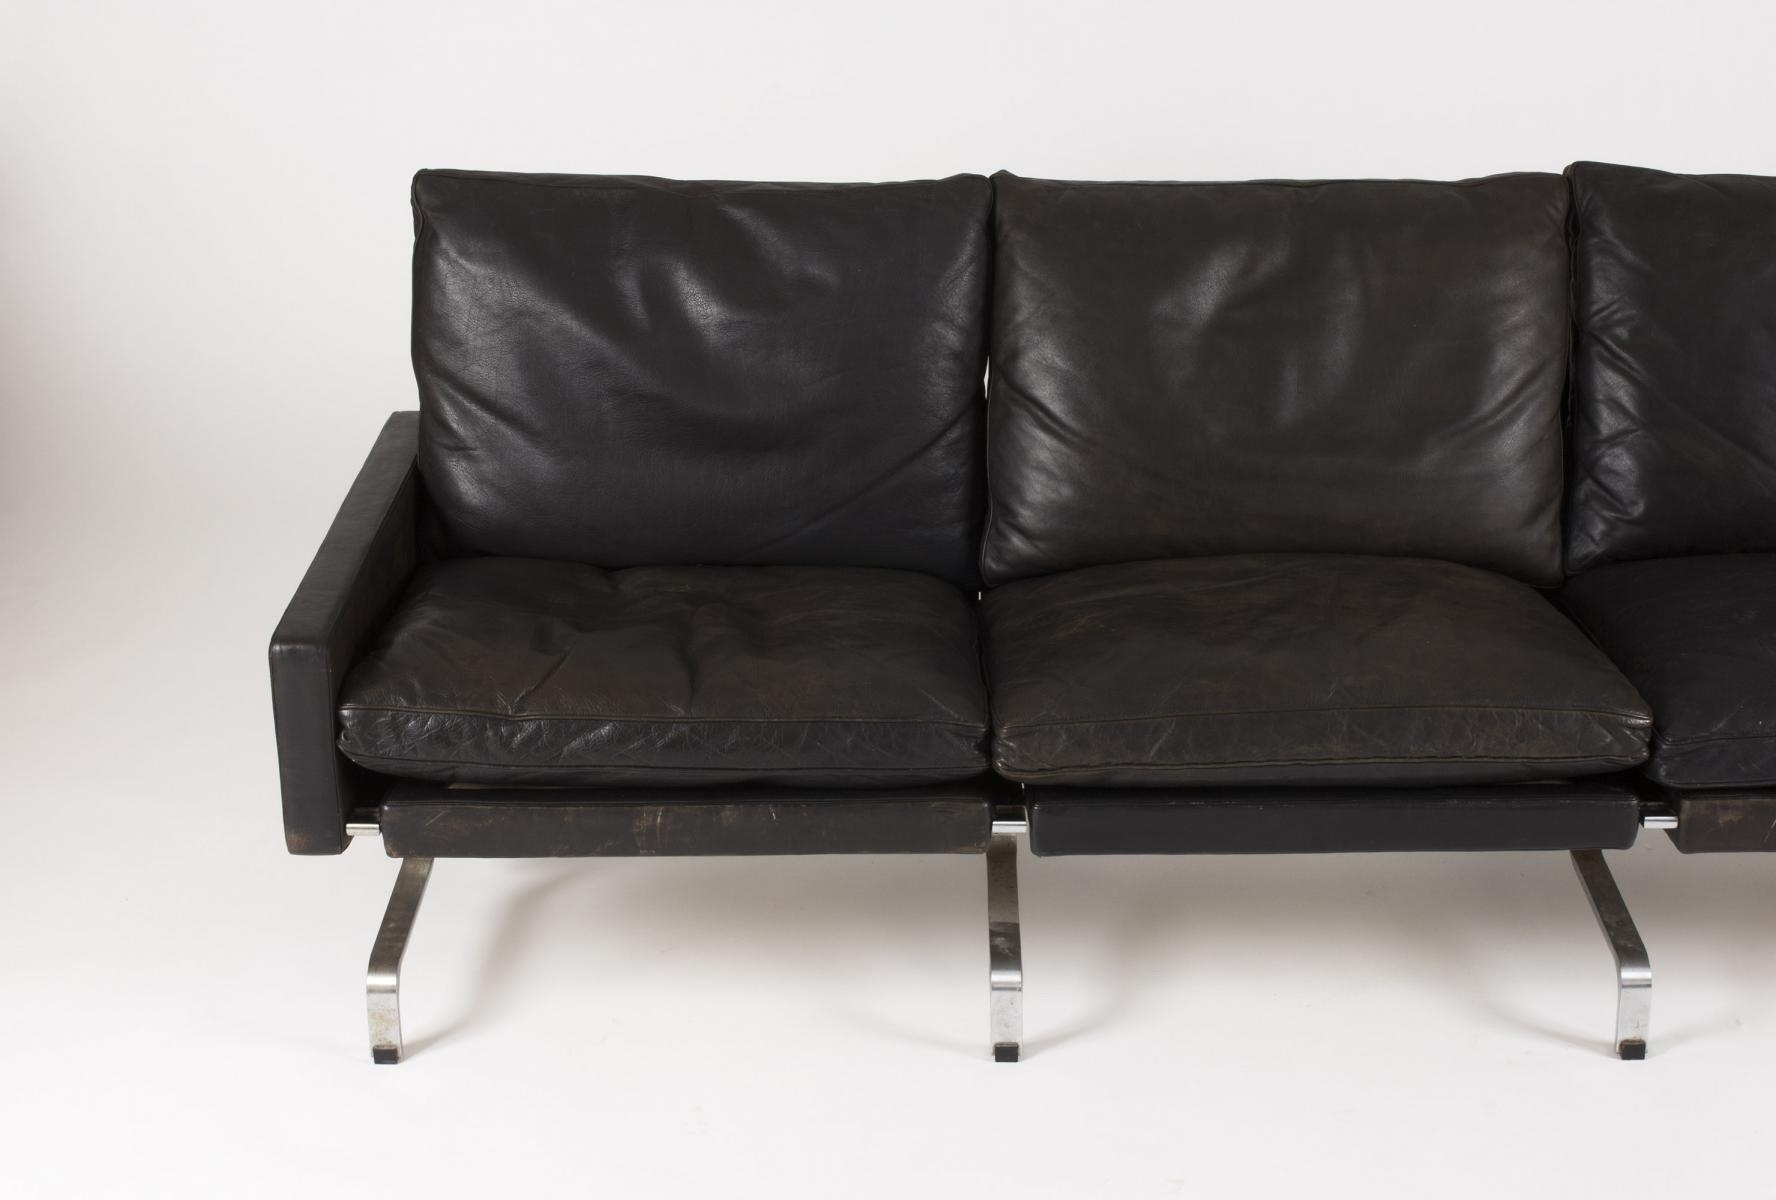 Well Known 3 Seater Leather Sofas With Regard To Pk 31 3 Seater Leather Sofapoul Kjaerholm For E (View 13 of 15)